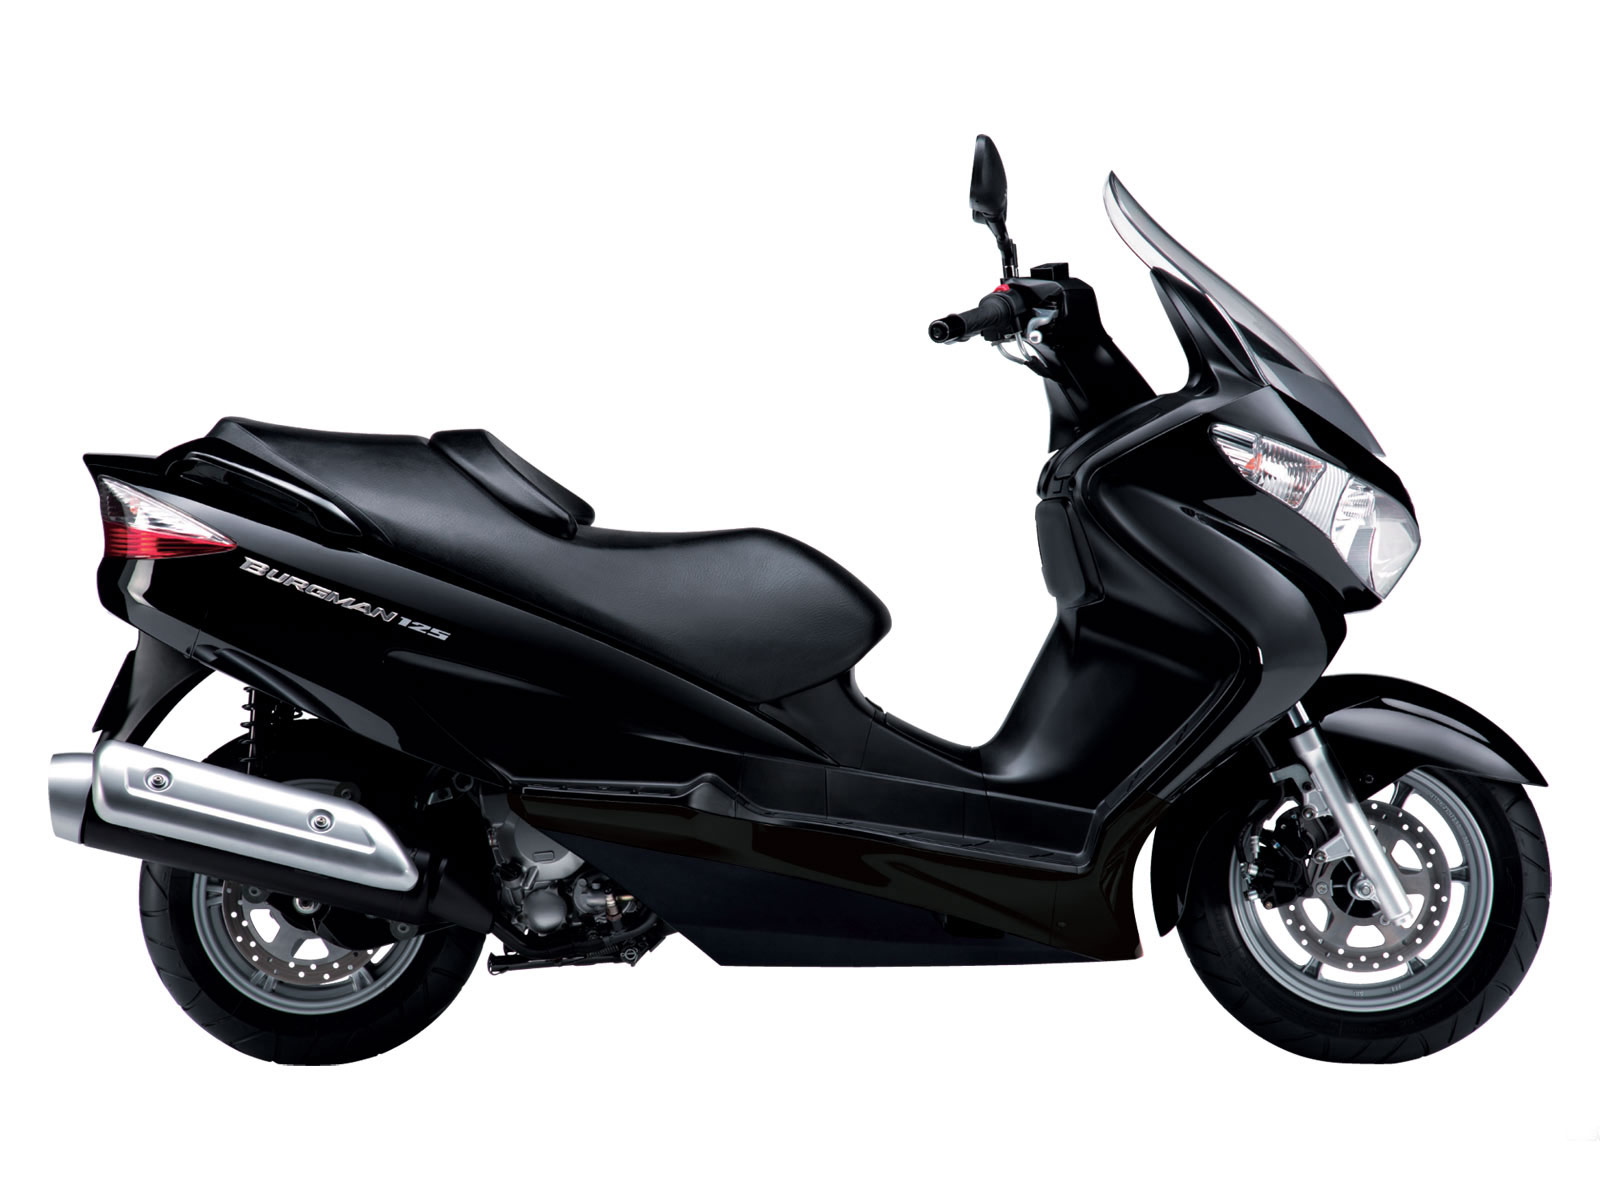 suzuki burgman 125 2010 scooter wallpapers